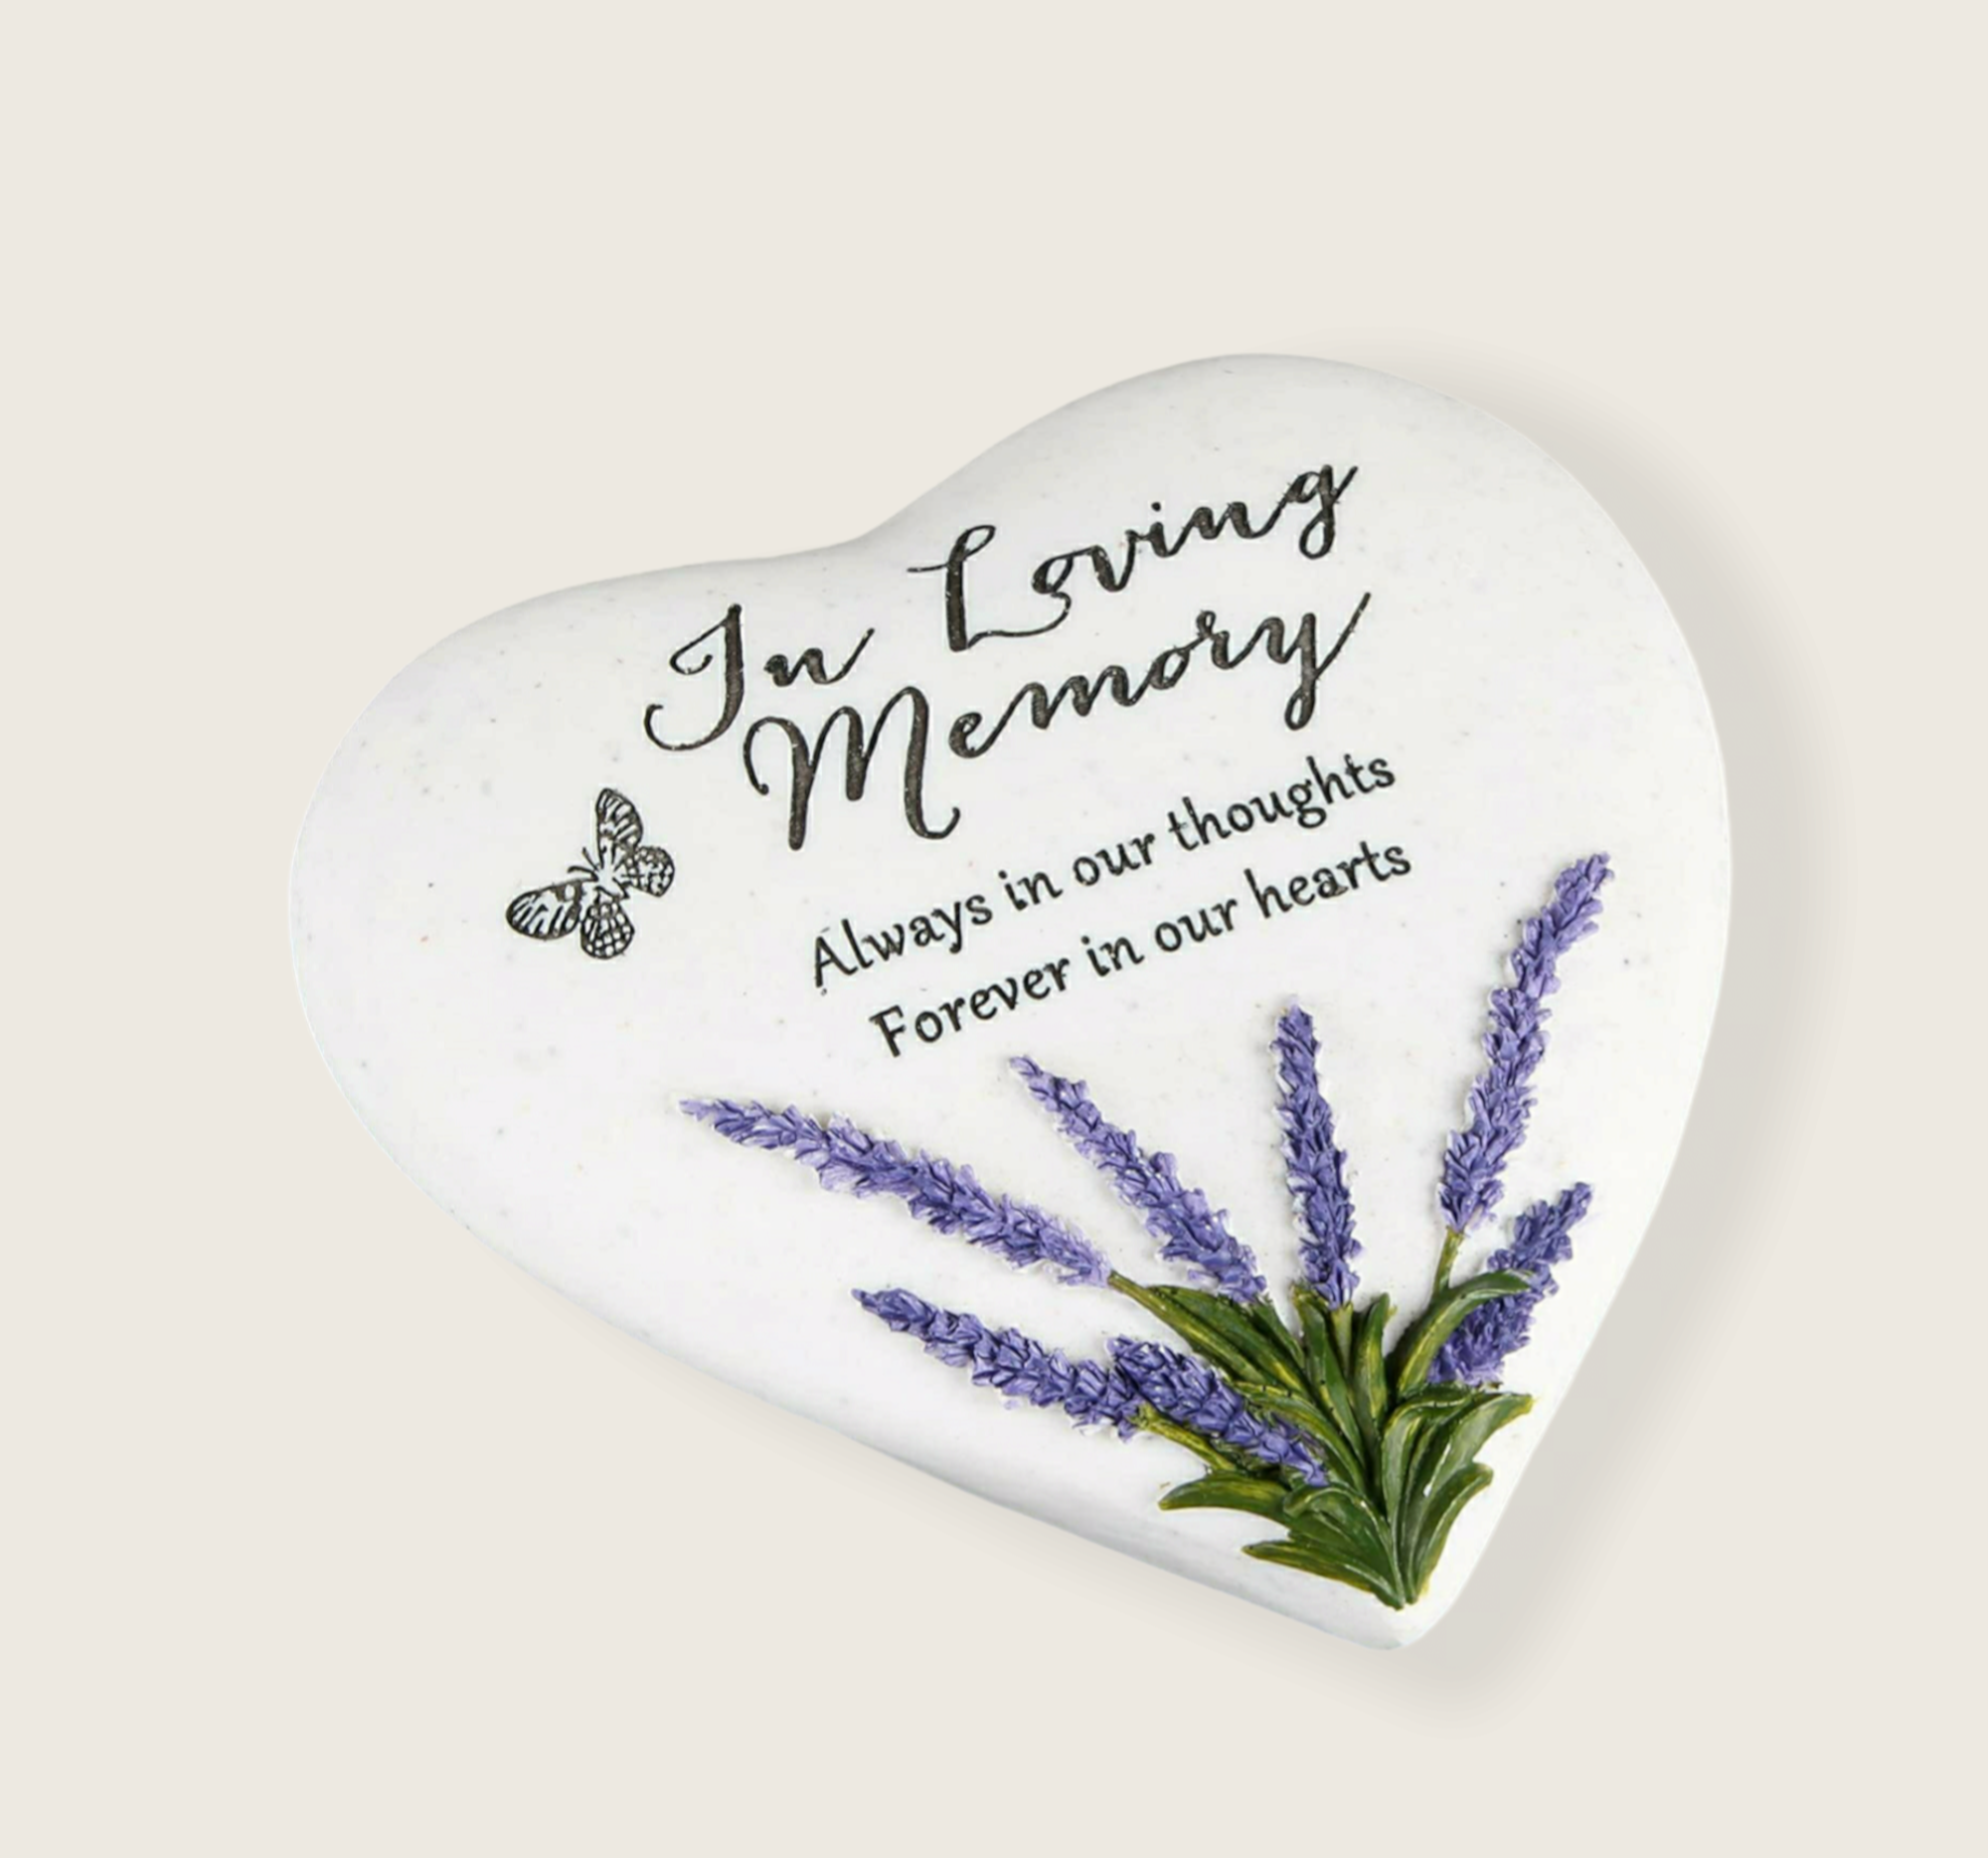 In Loving Memory –  Heart Shape Stone with Lavender design